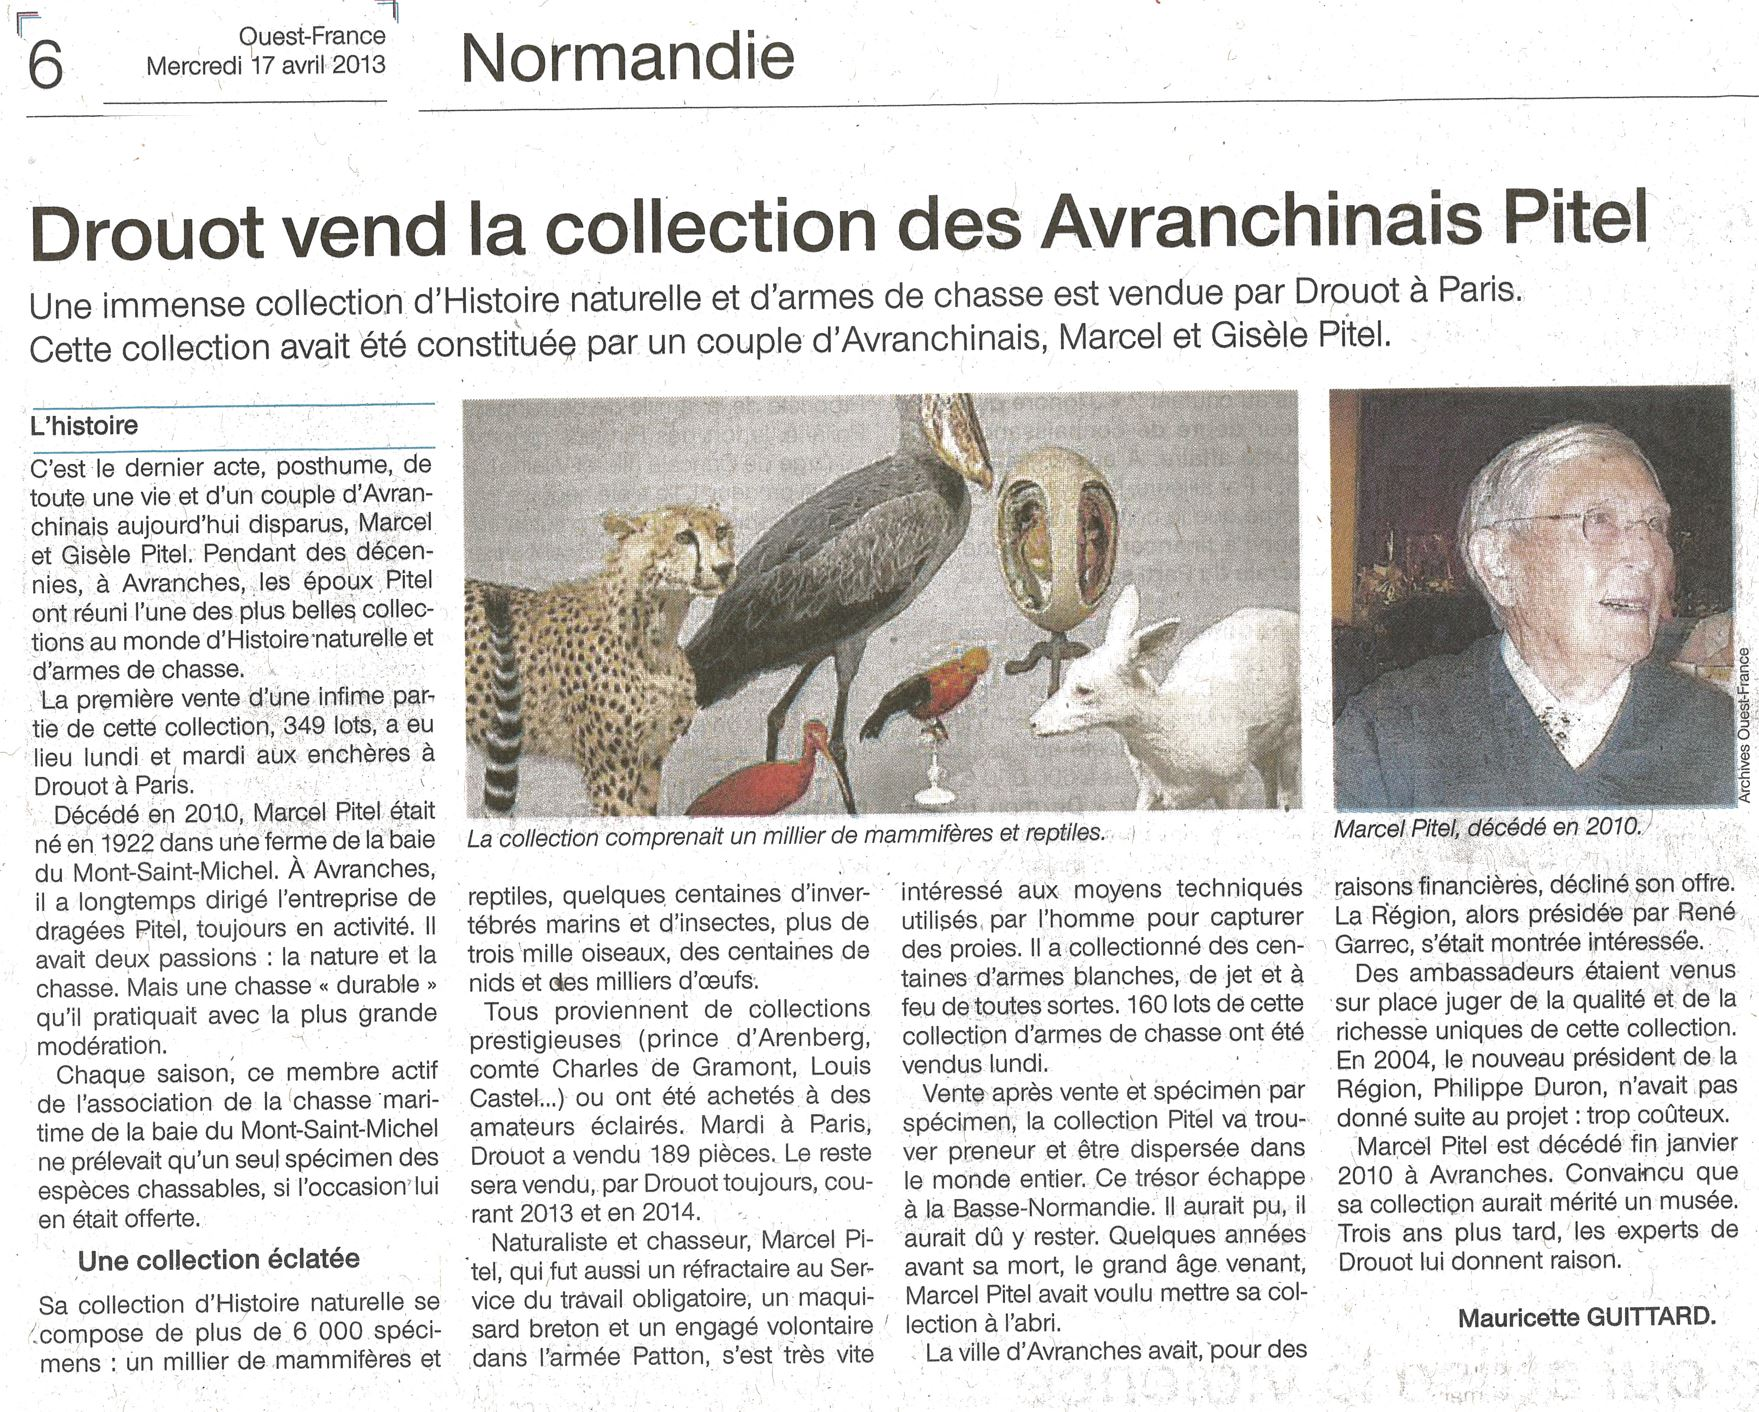 OuestFrance_20130417.jpg